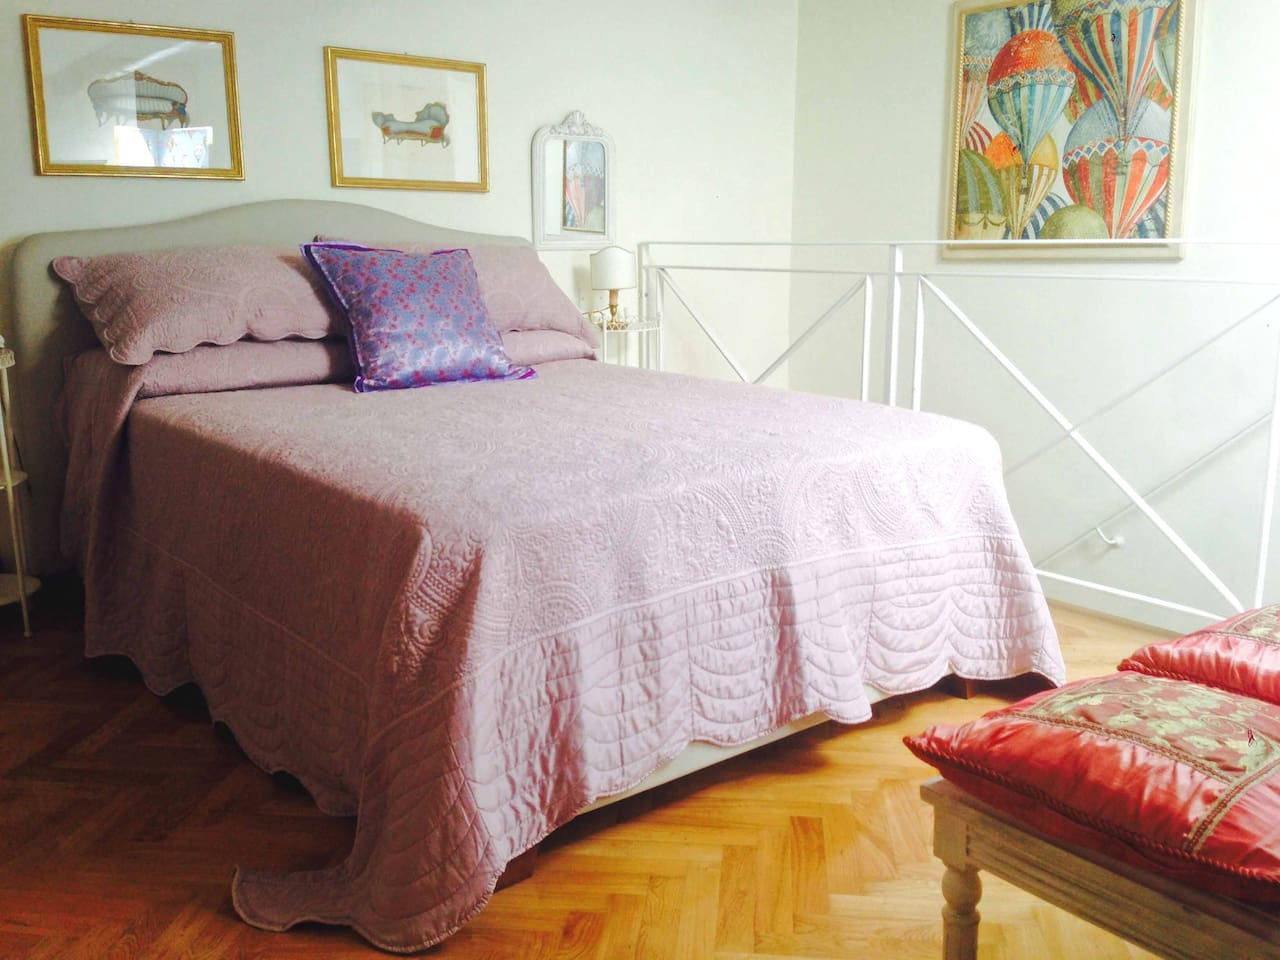 Bedroom - the spacious double bed